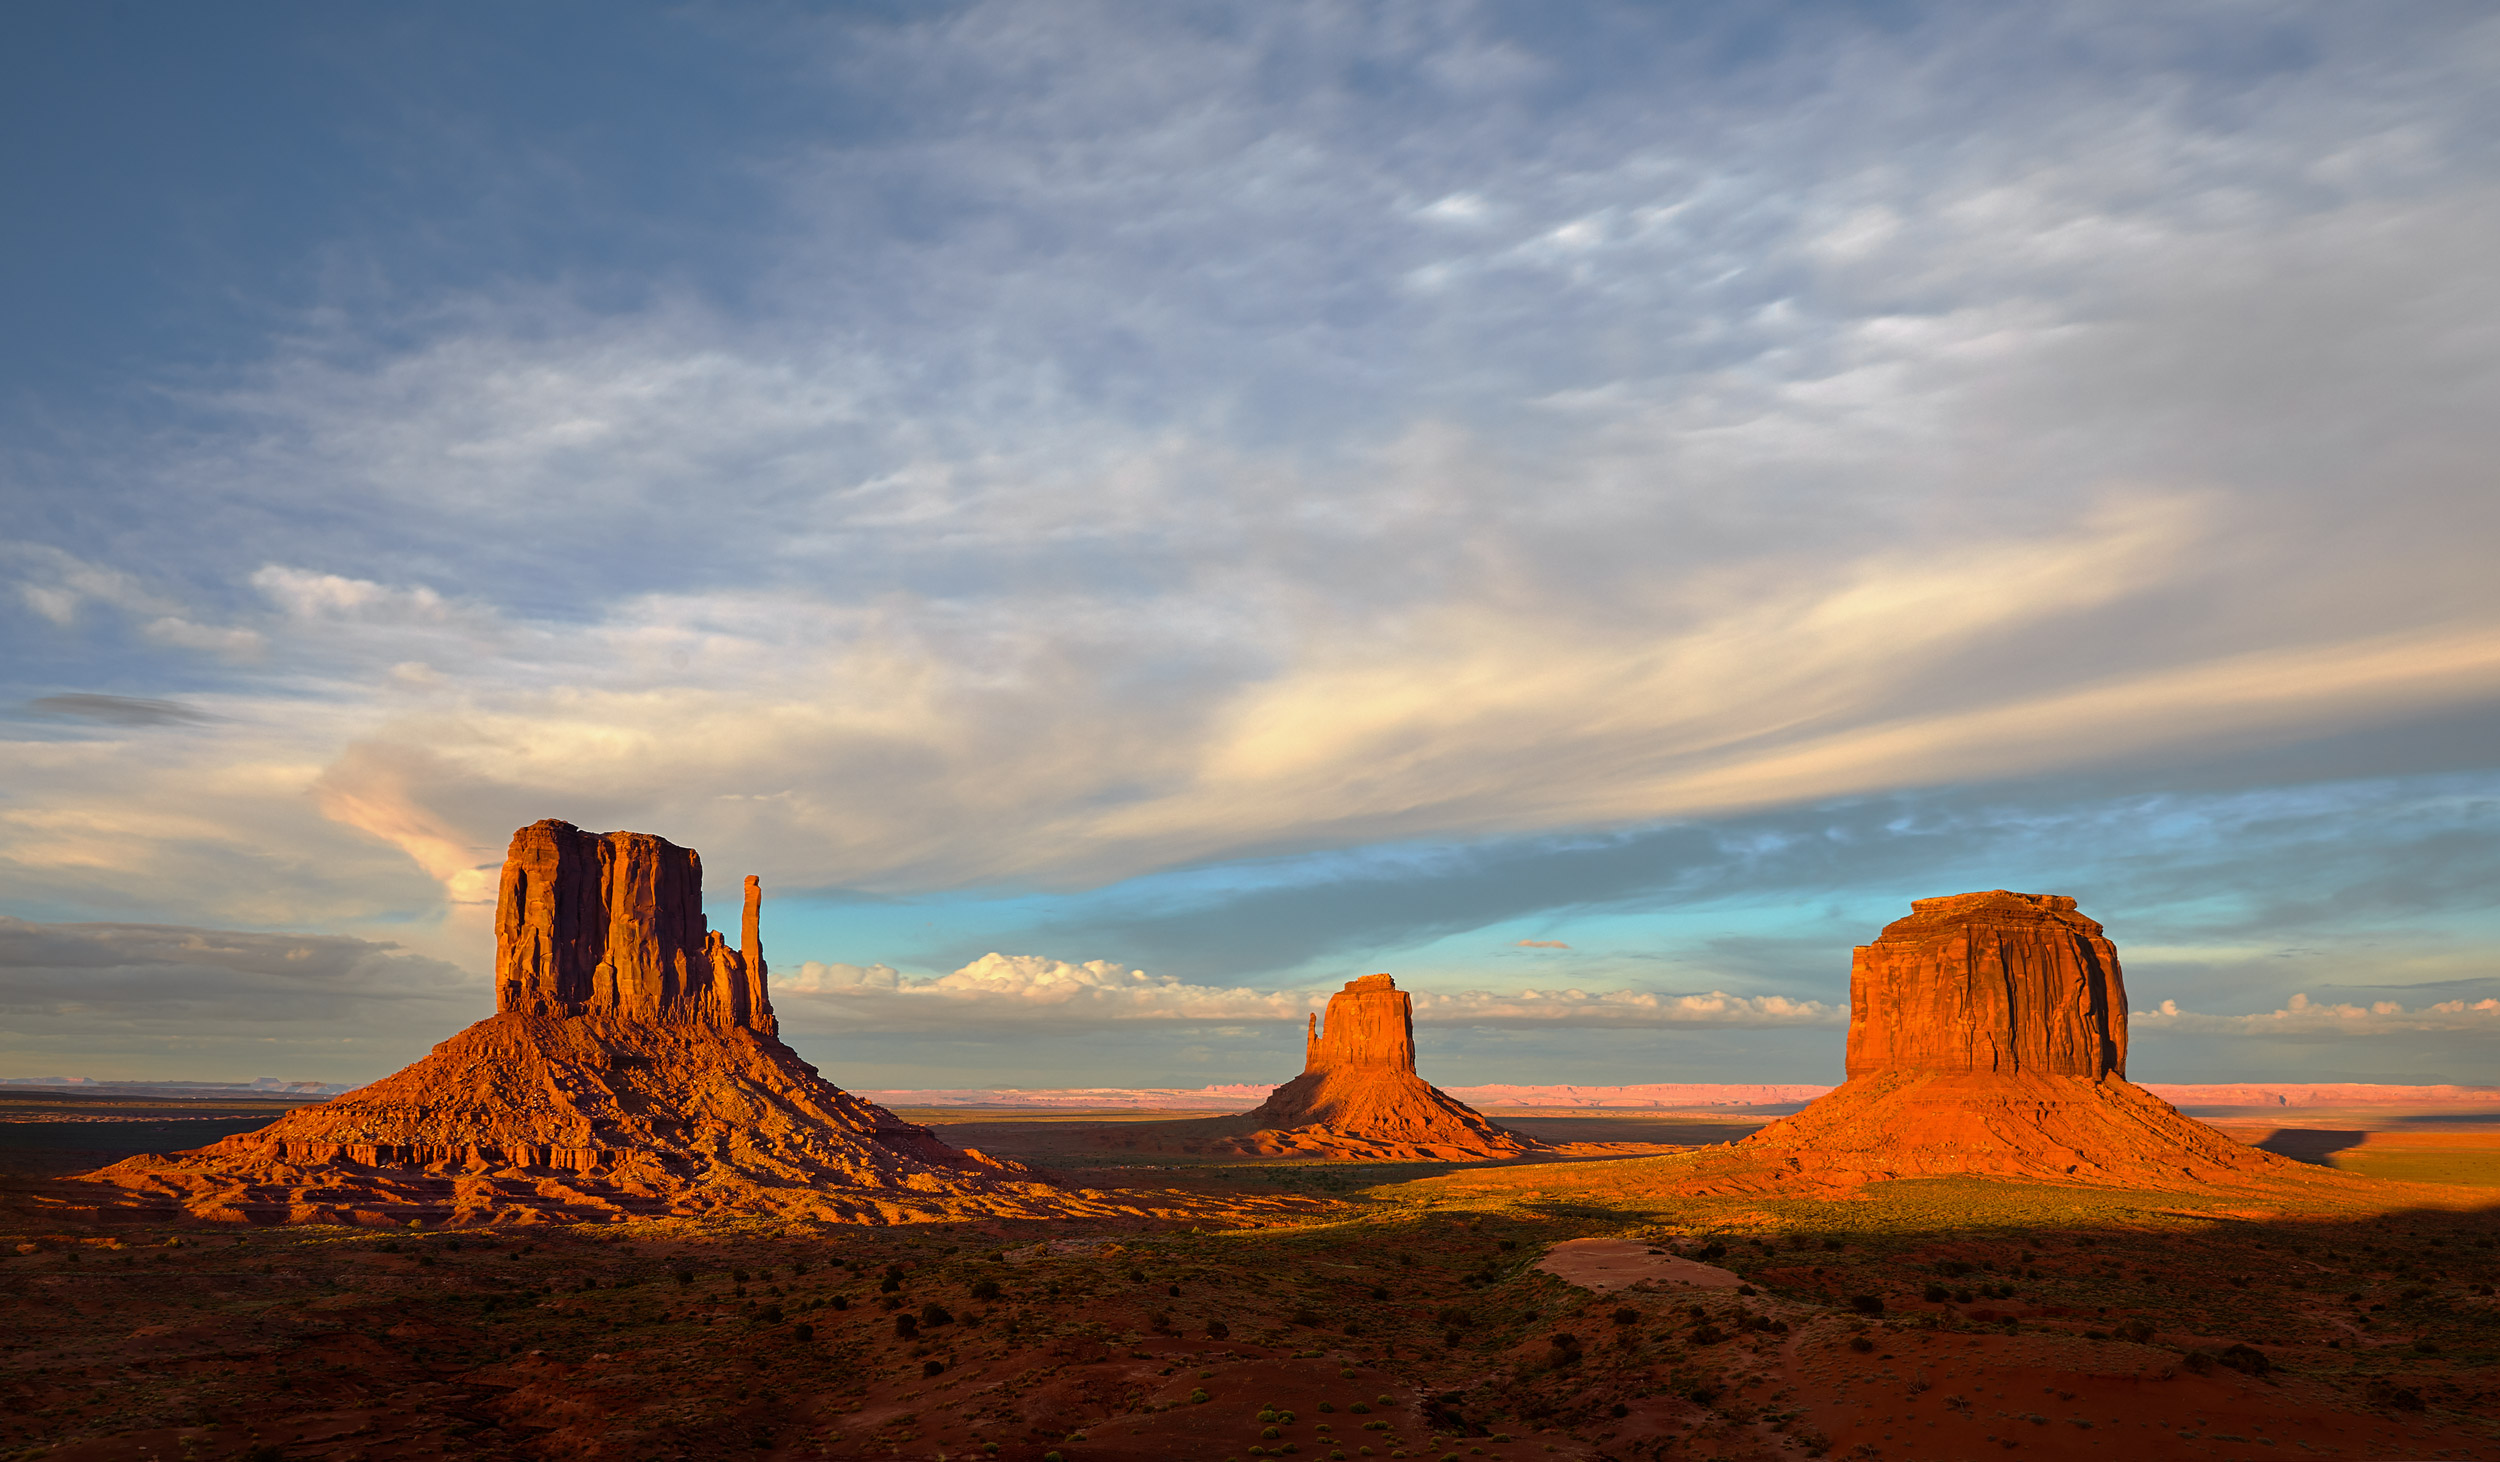 Monument Valley, Arizona - Stephen Denton Photography - Phoenix AZ Commercial Photographer